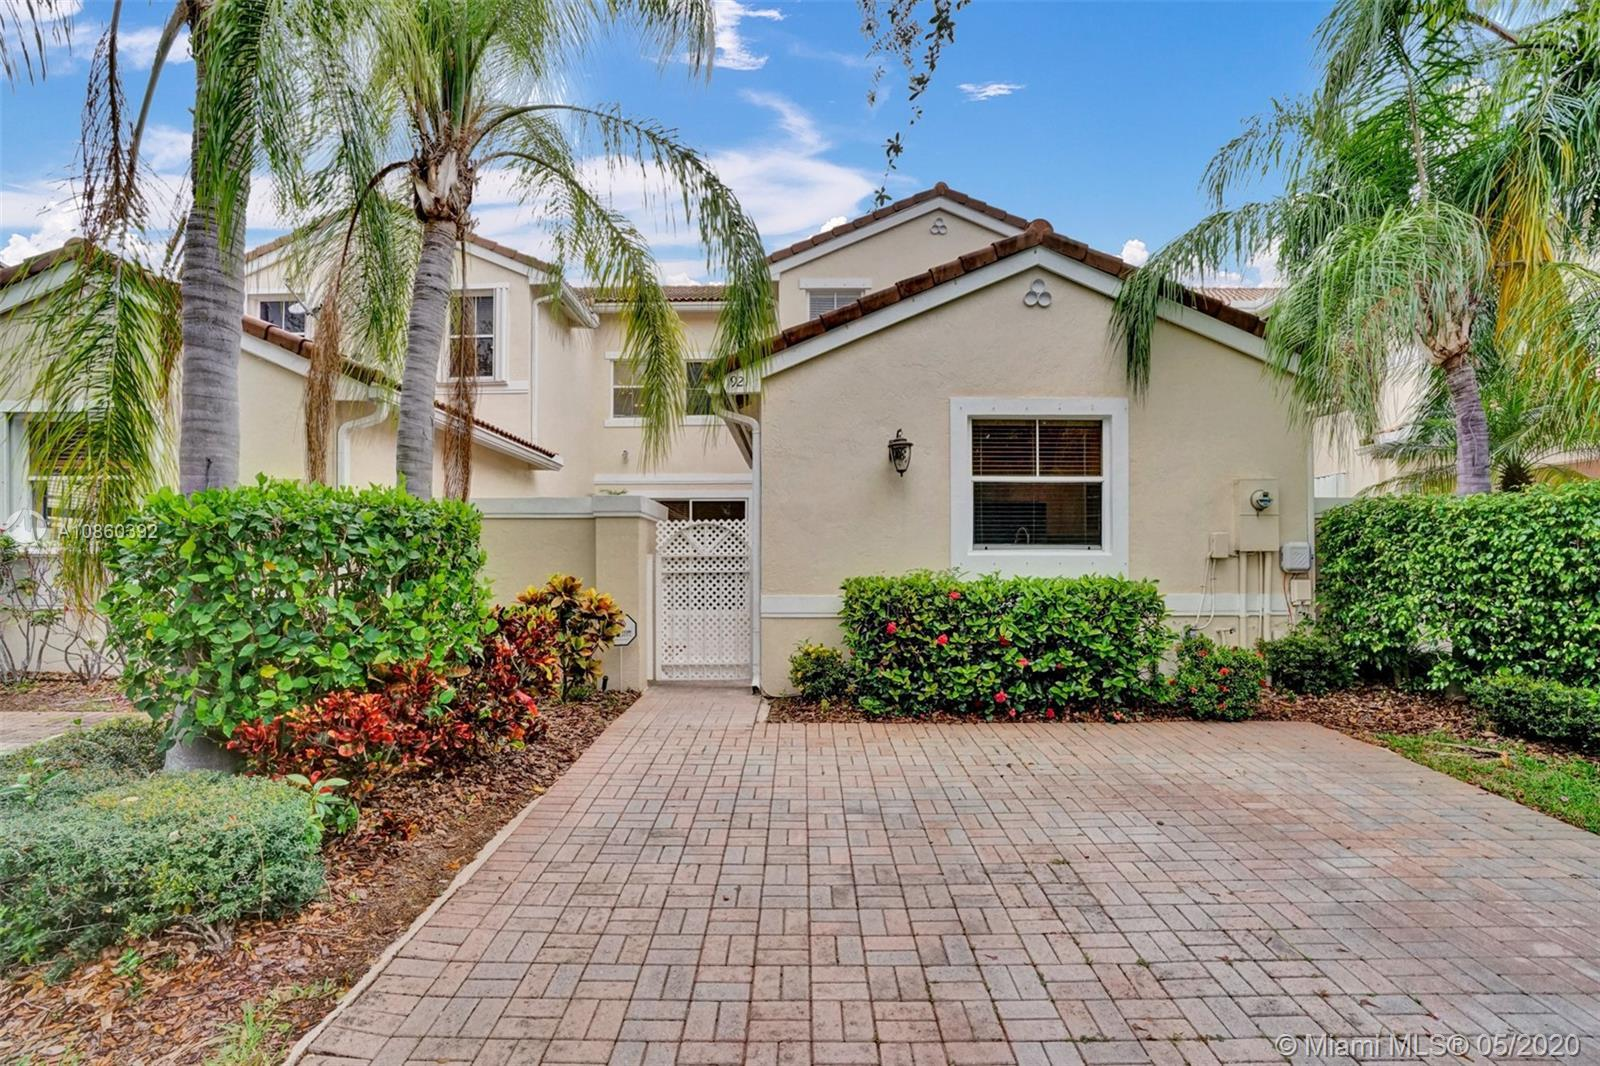 Beautiful 3 bedrooms 3 Full bathrooms in West Lake Village with amazing amenities including Swimming